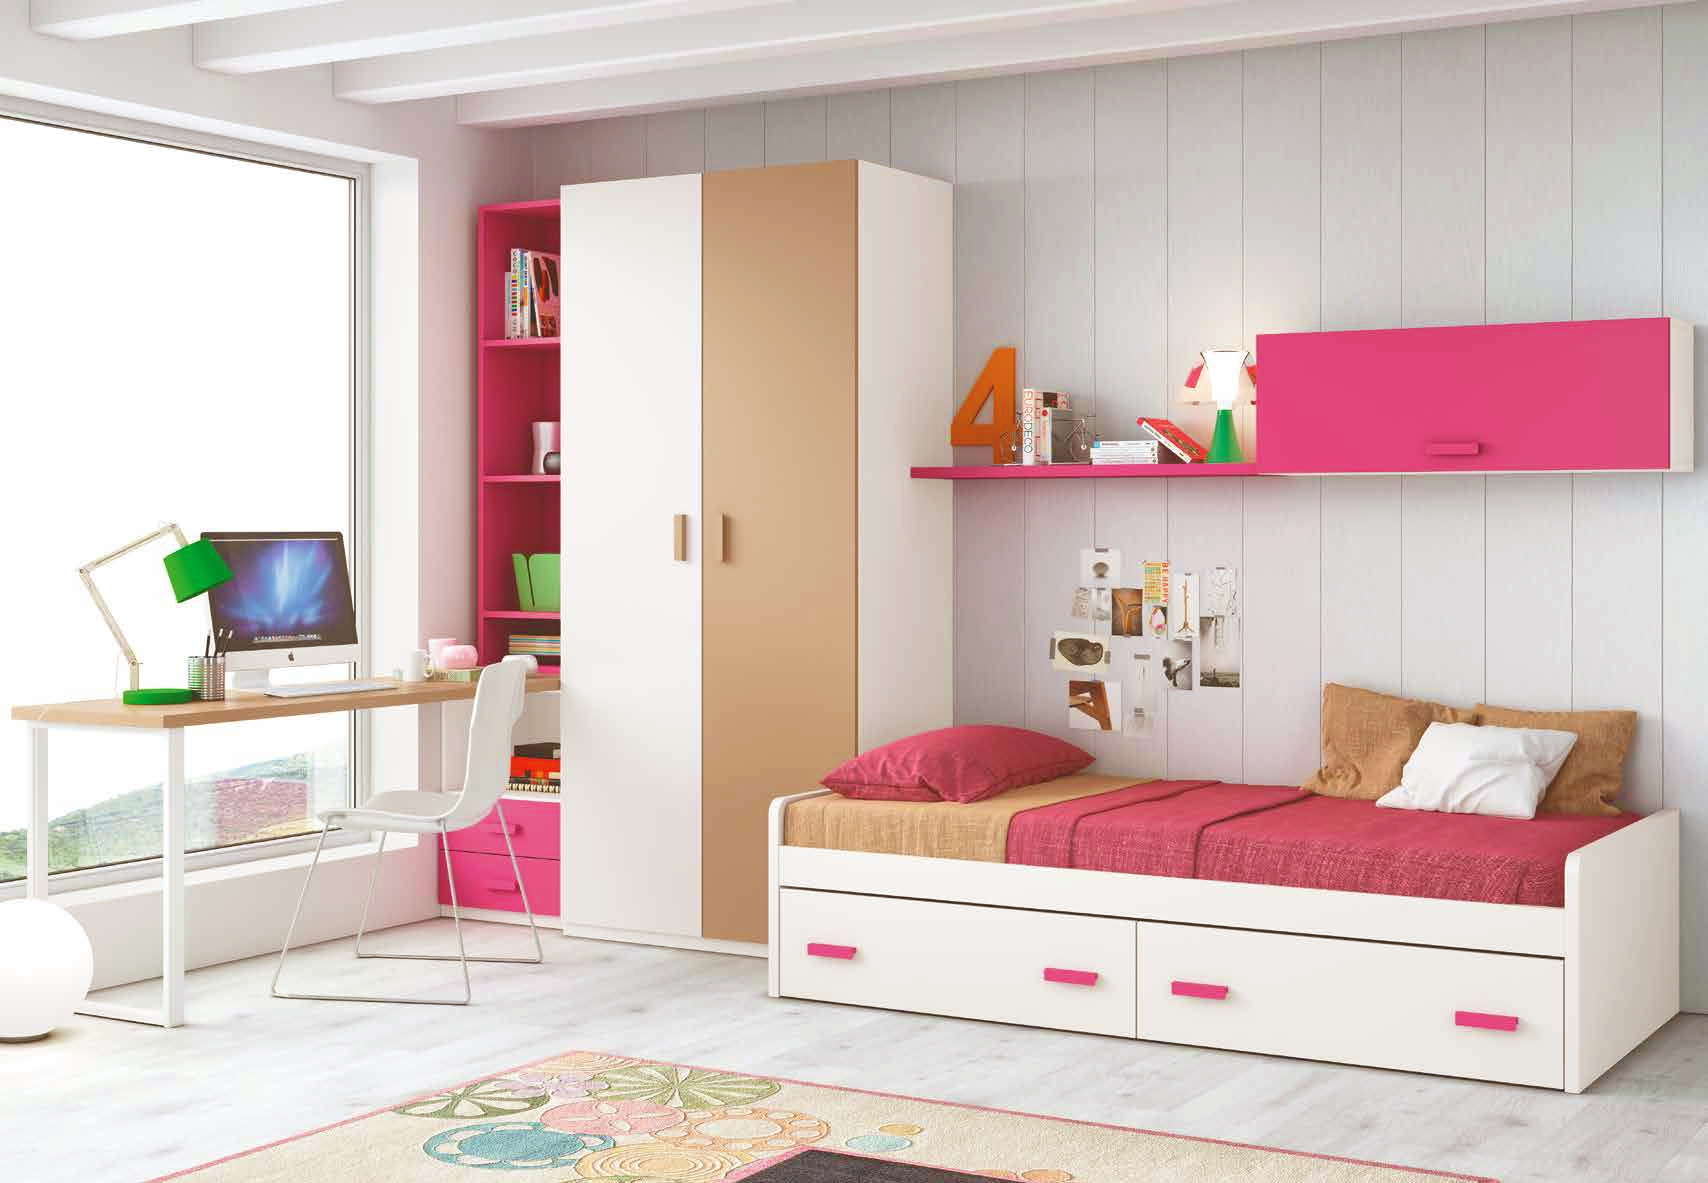 Emejing chambre pour fille ado pictures design trends for Chambre de fille ado